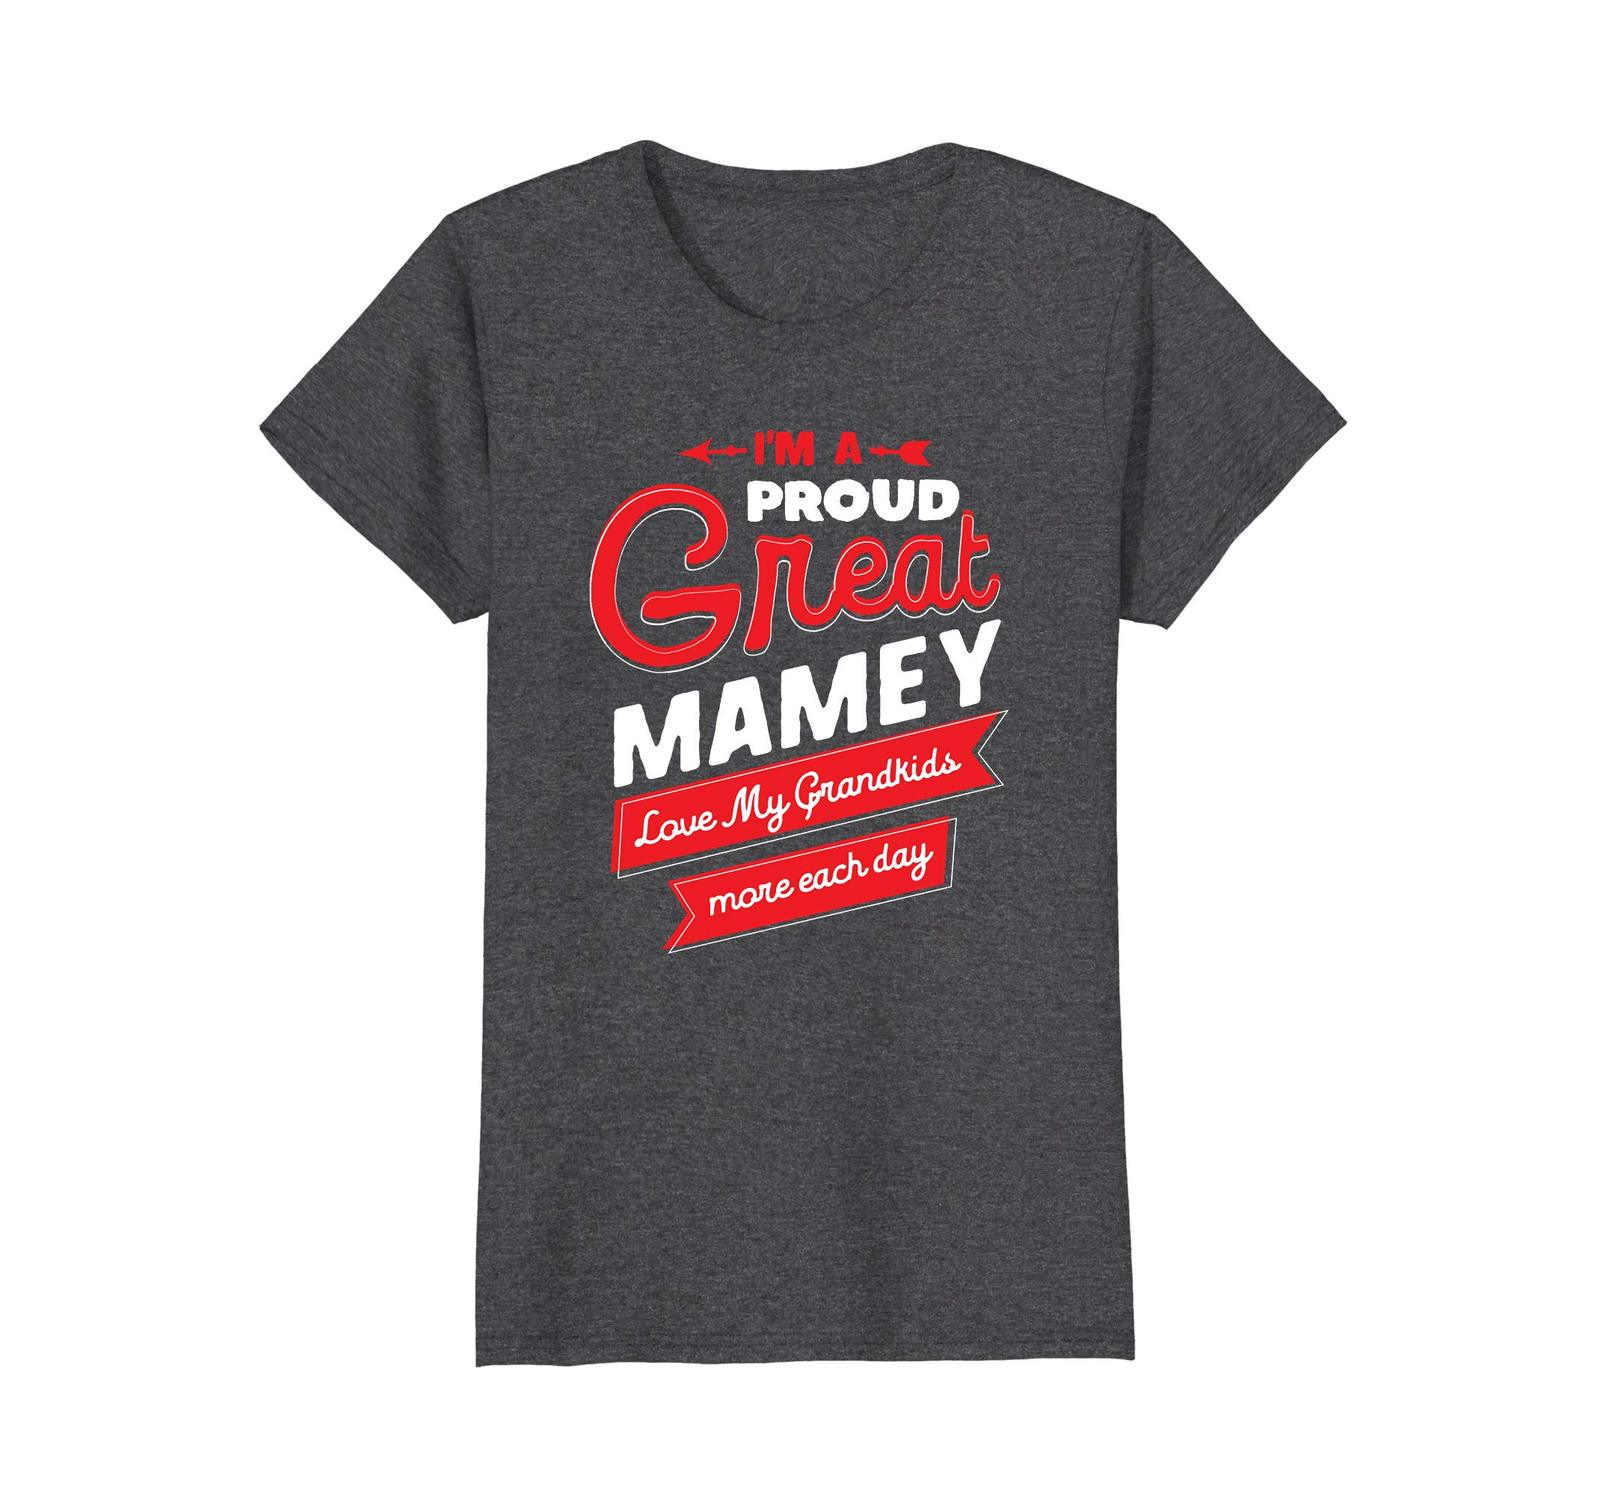 Primary image for Funny Shirts - Proud Great Mamey Love My Grandkids Grandma Gift T Shirt Wowen